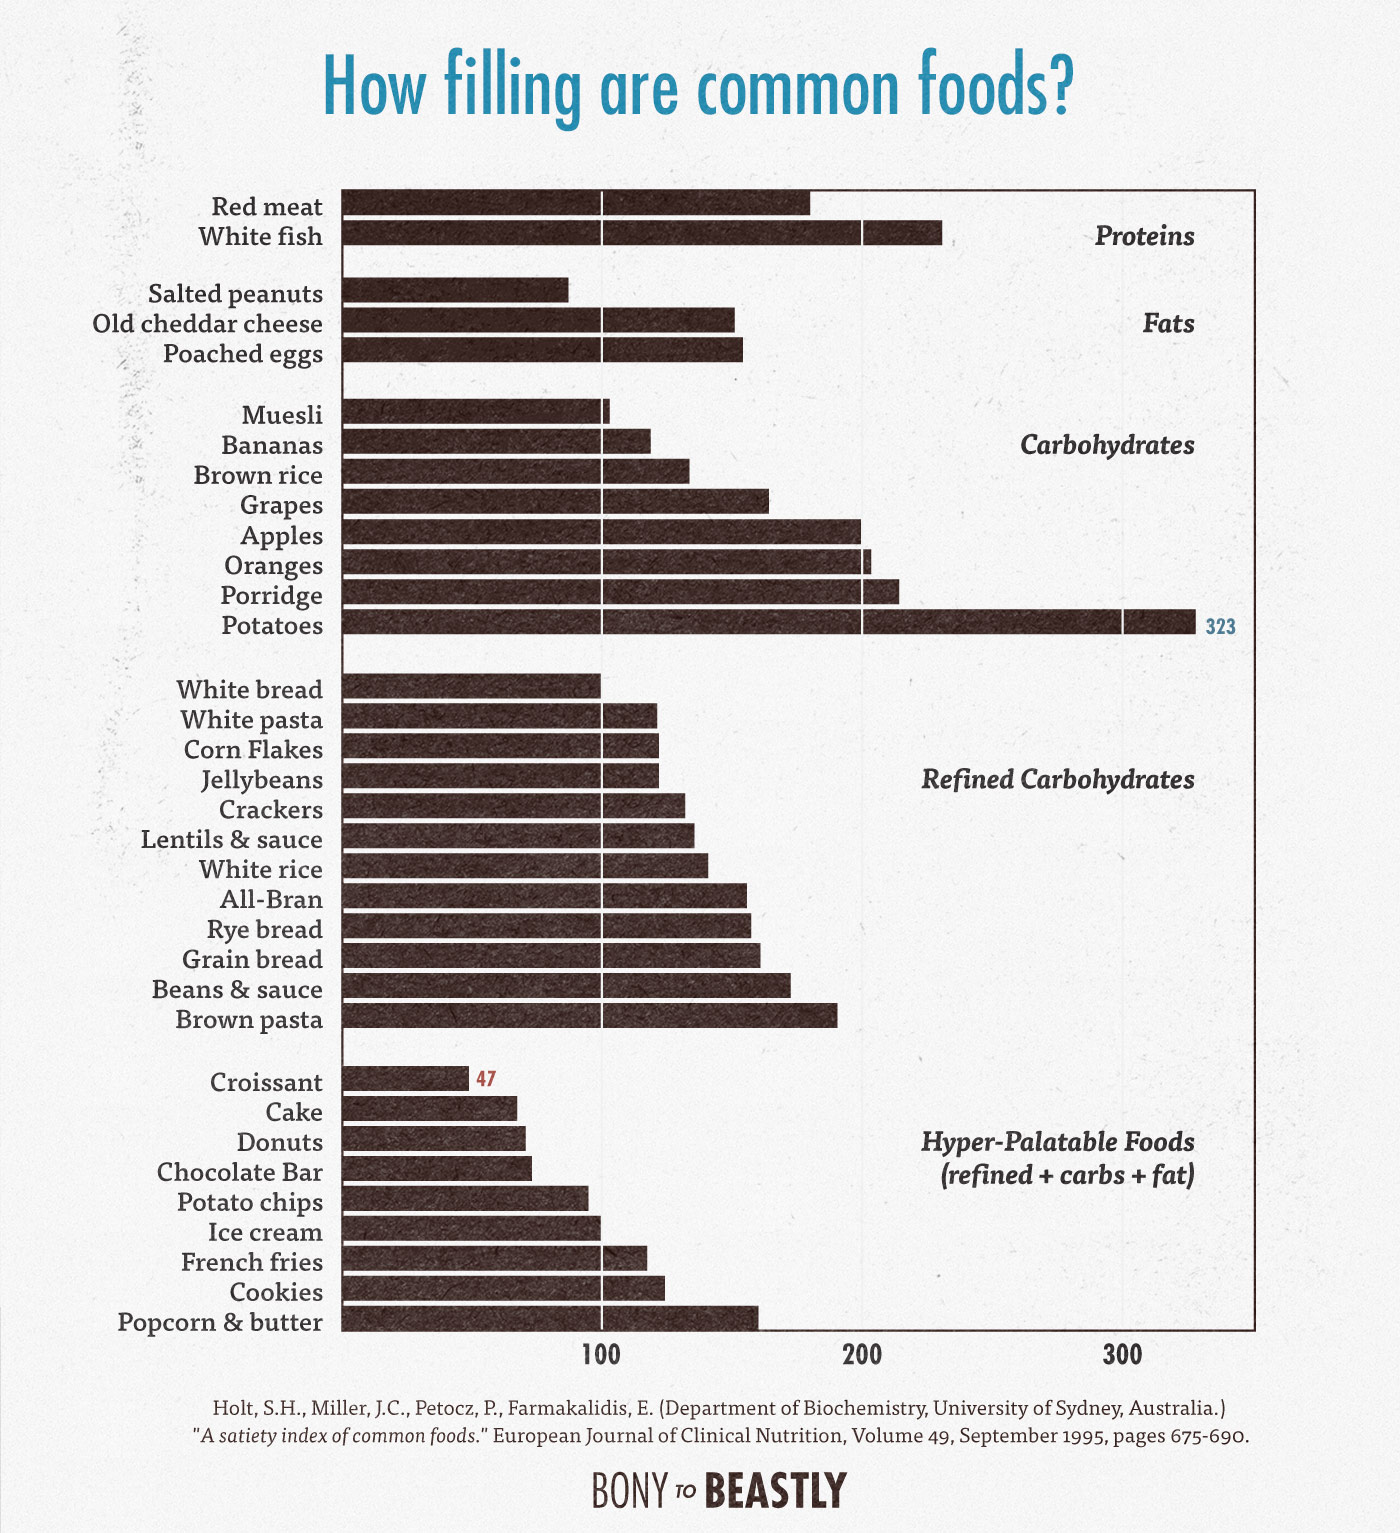 A chart showing how filling common foods are